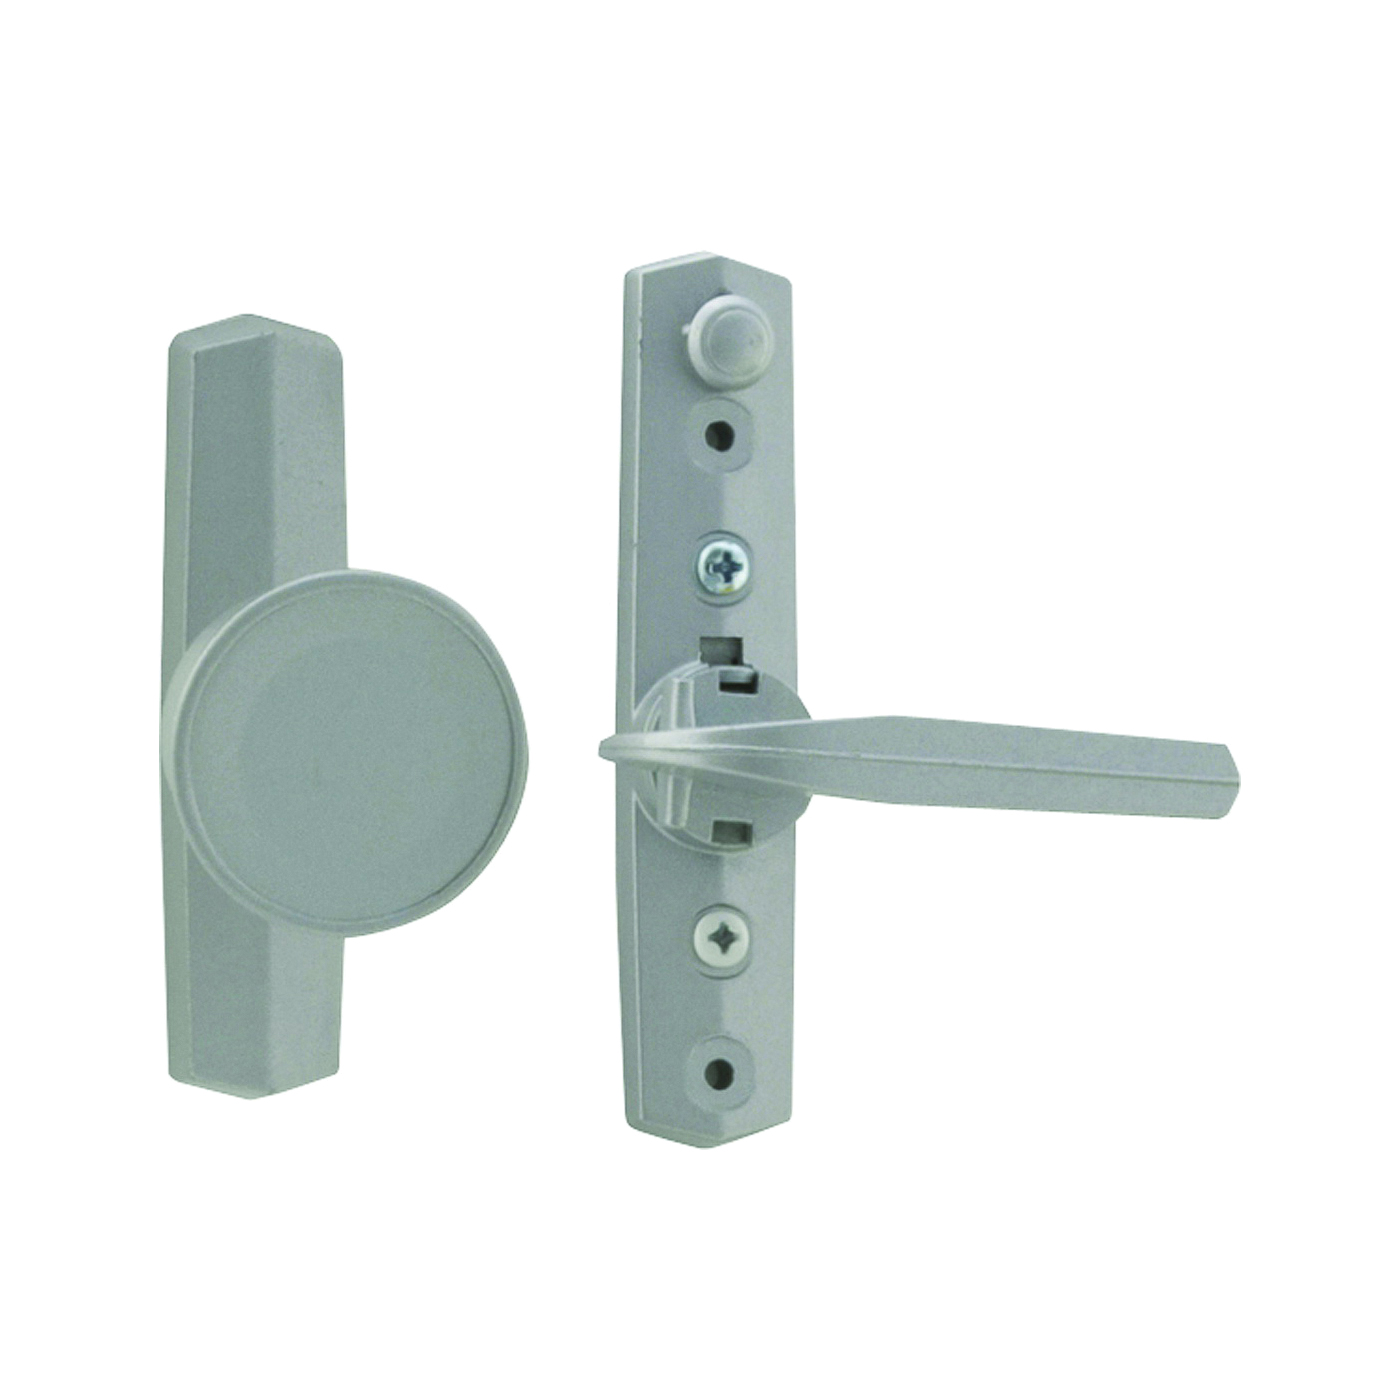 Picture of Wright Products V670 Knob Latch, 3/4 to 1-1/8 in Thick Door, For: Out-Swinging Wood/Metal Screen, Storm Doors